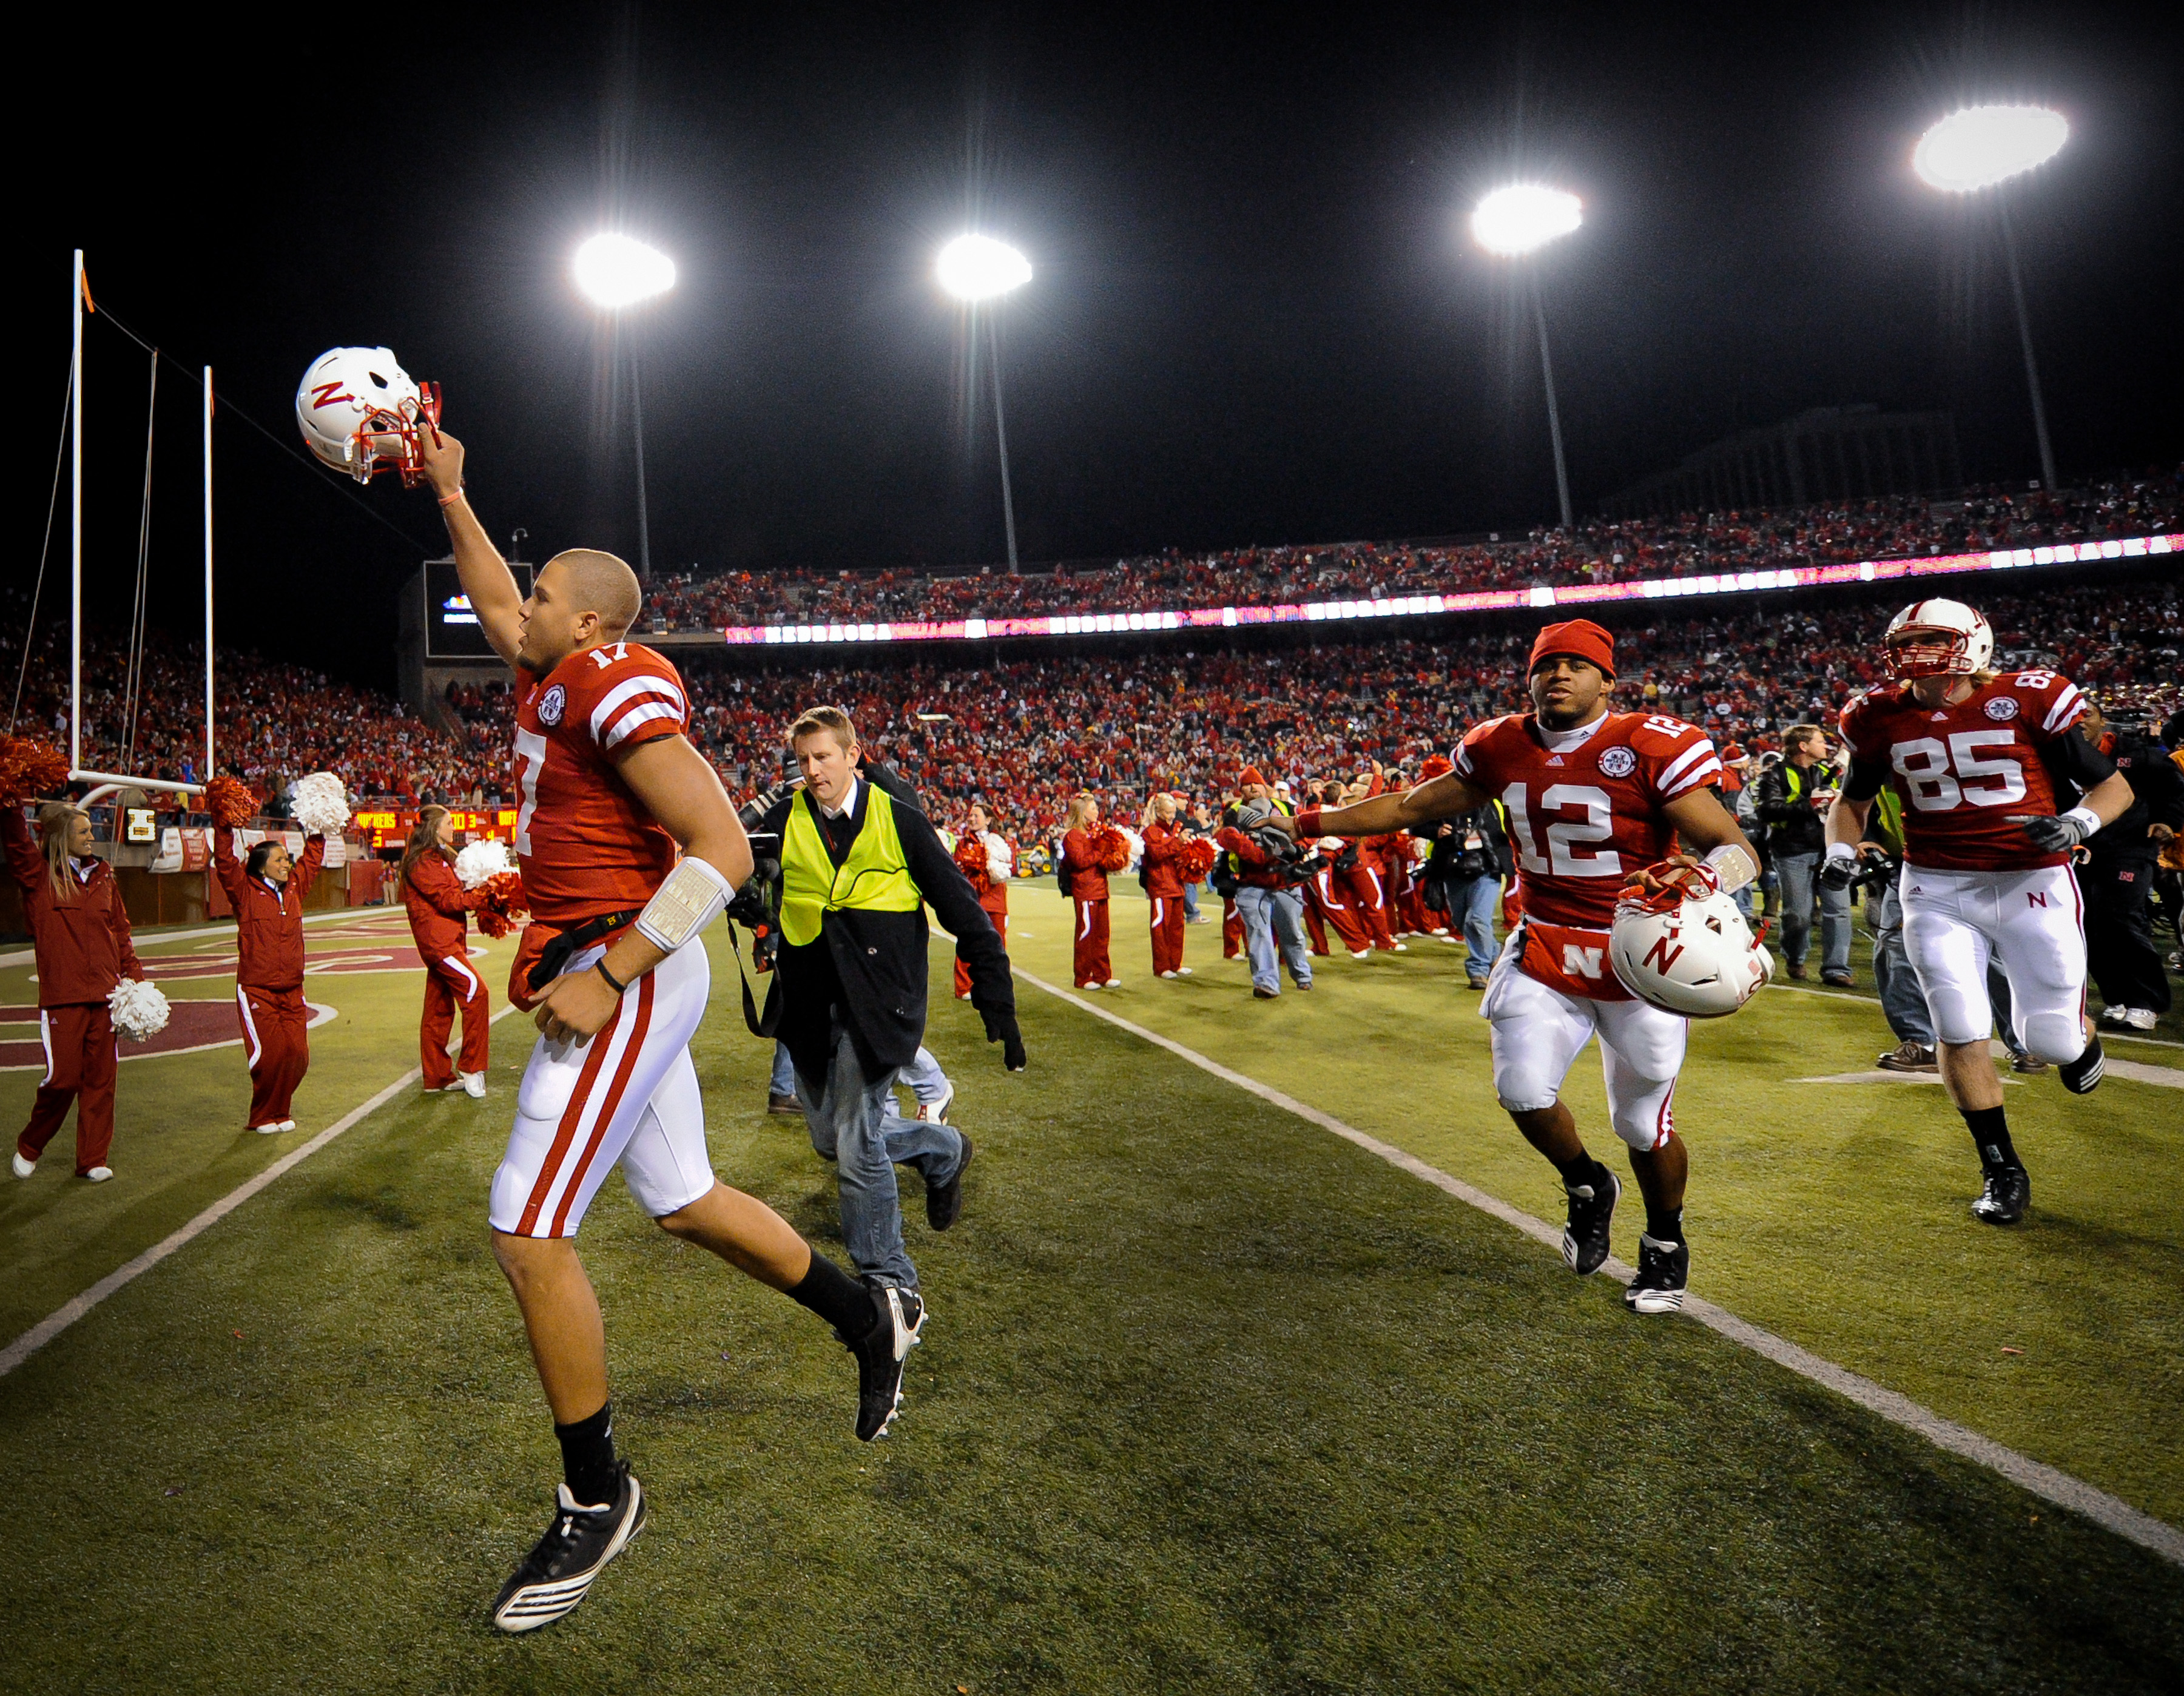 LINCOLN, NE - NOVEMBER 26: Cody Green #17 of the Nebraska Cornhuskers runs off the field after defeating the Colorado Buffalos at Memorial Stadium on November 26, 2010 in Lincoln, Nebraska. Nebraska defeated Colorado 45-17. (Photo by Eric Francis/Getty Im